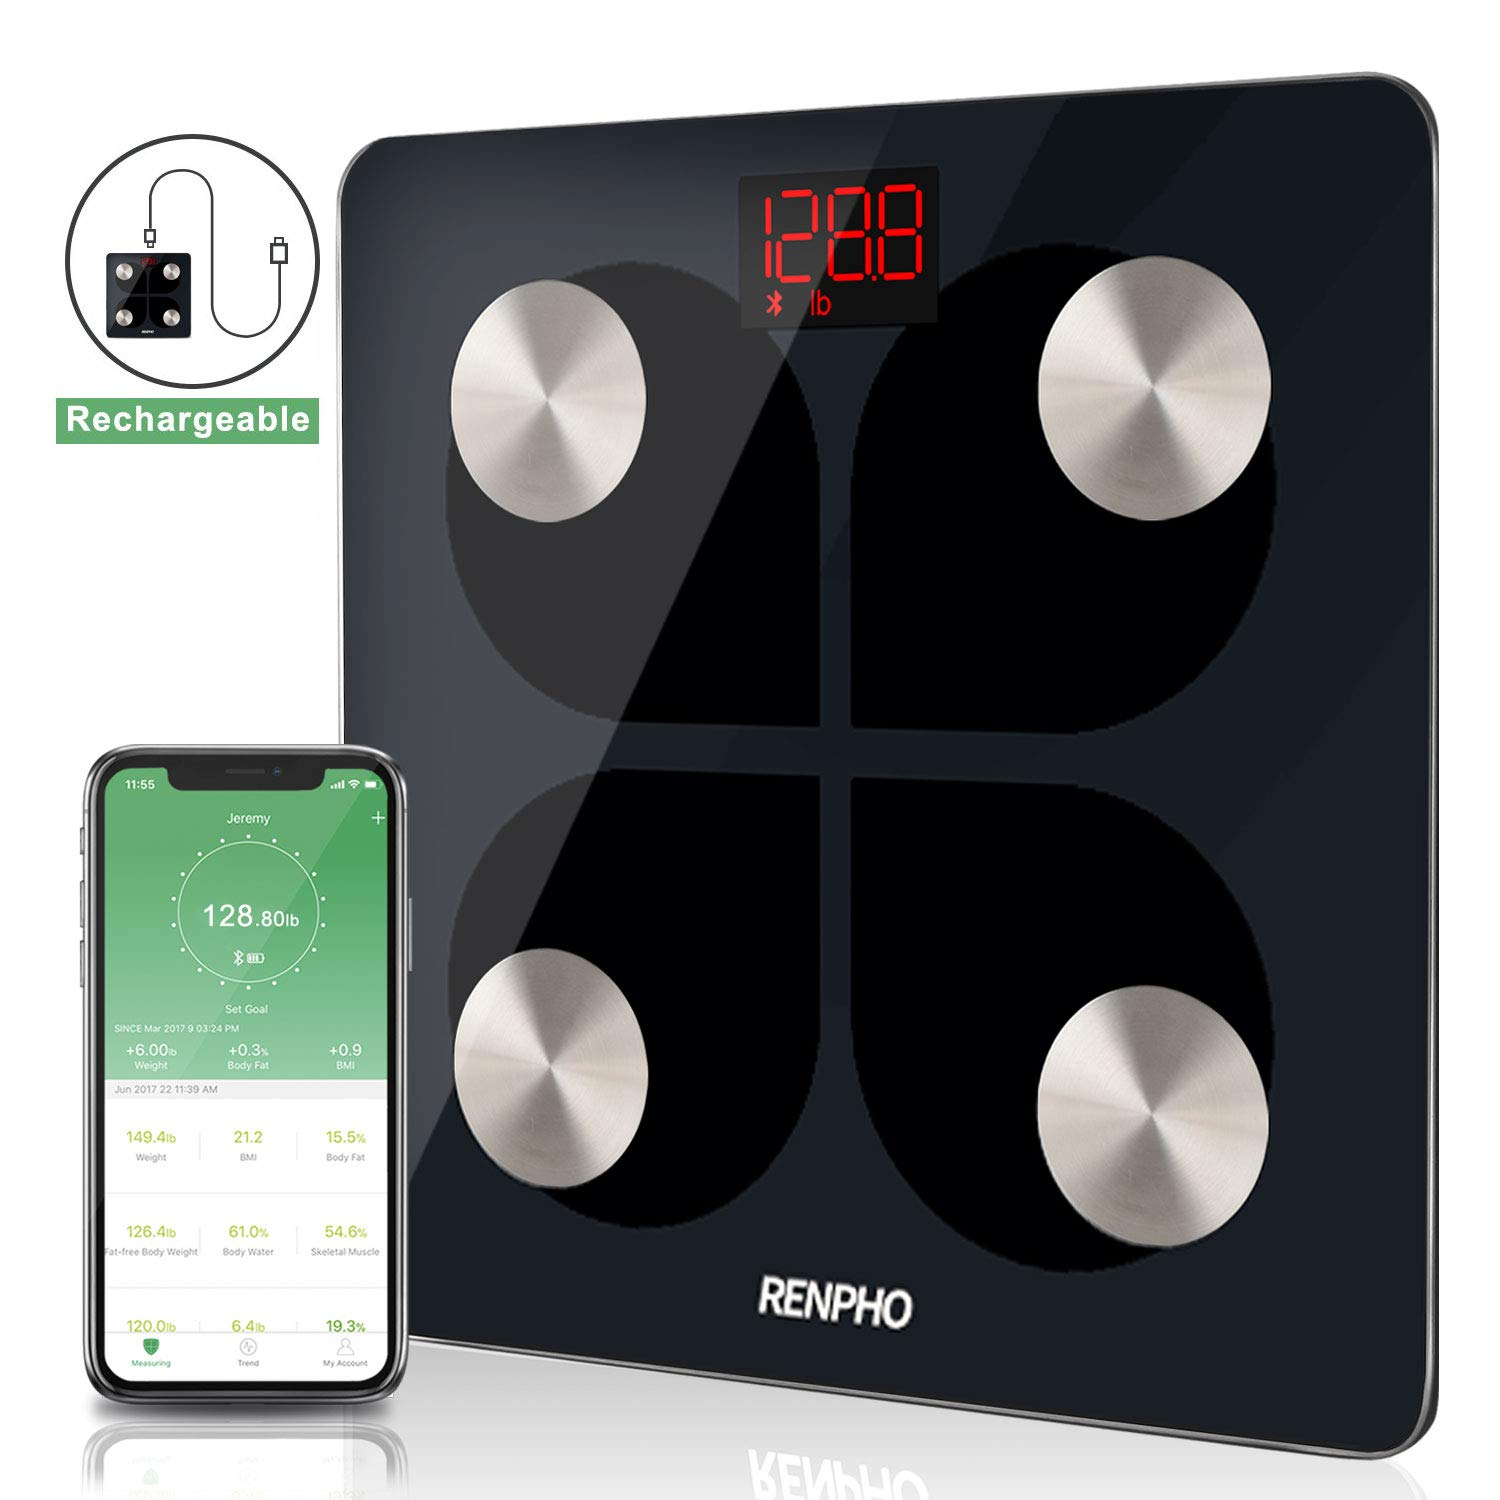 RENPHO Bluetooth Body Fat Smart Scale USB Rechargeable Digital Bathroom Weight Scale Body Fat Monitor with Smatrphone App, 396 lbs by RENPHO (Image #1)